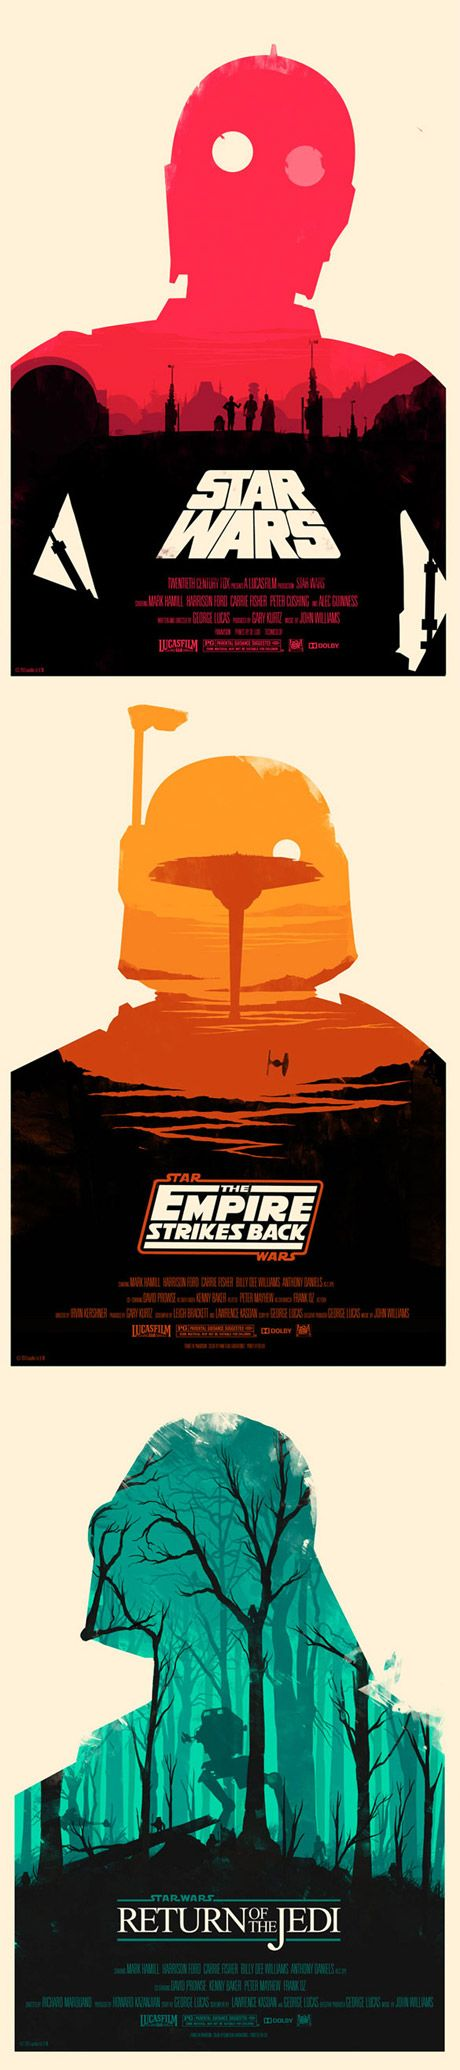 Olly Moss - Graphic Designer  Graphic Posters Star Wars art